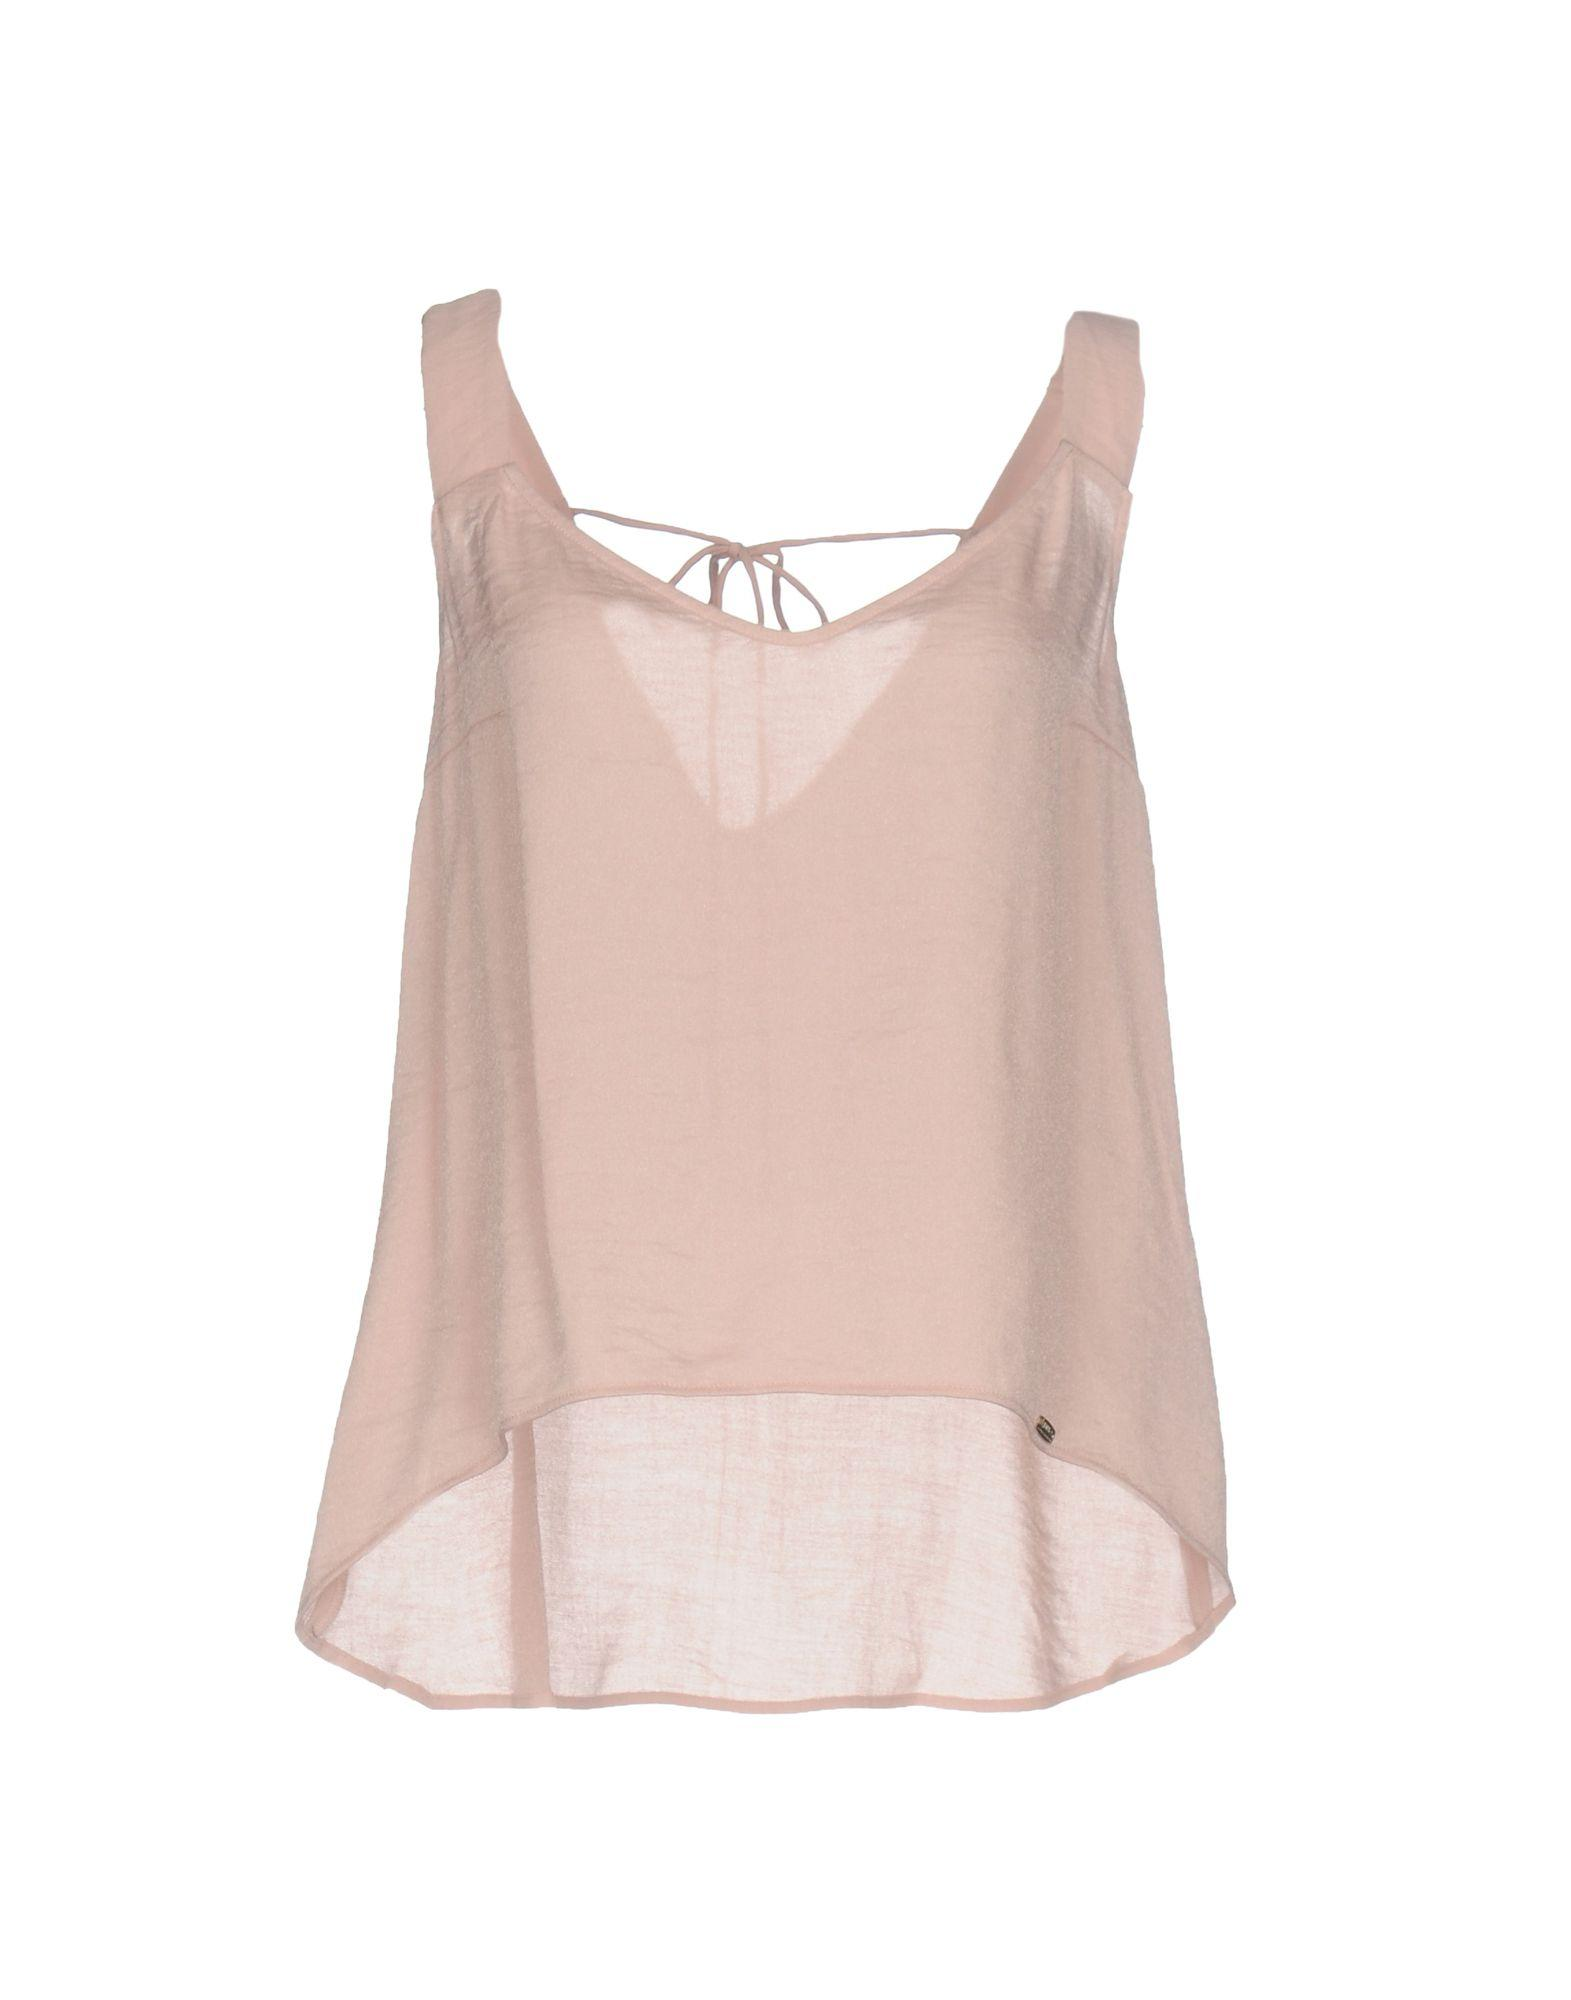 Liu •jo Top In Pink